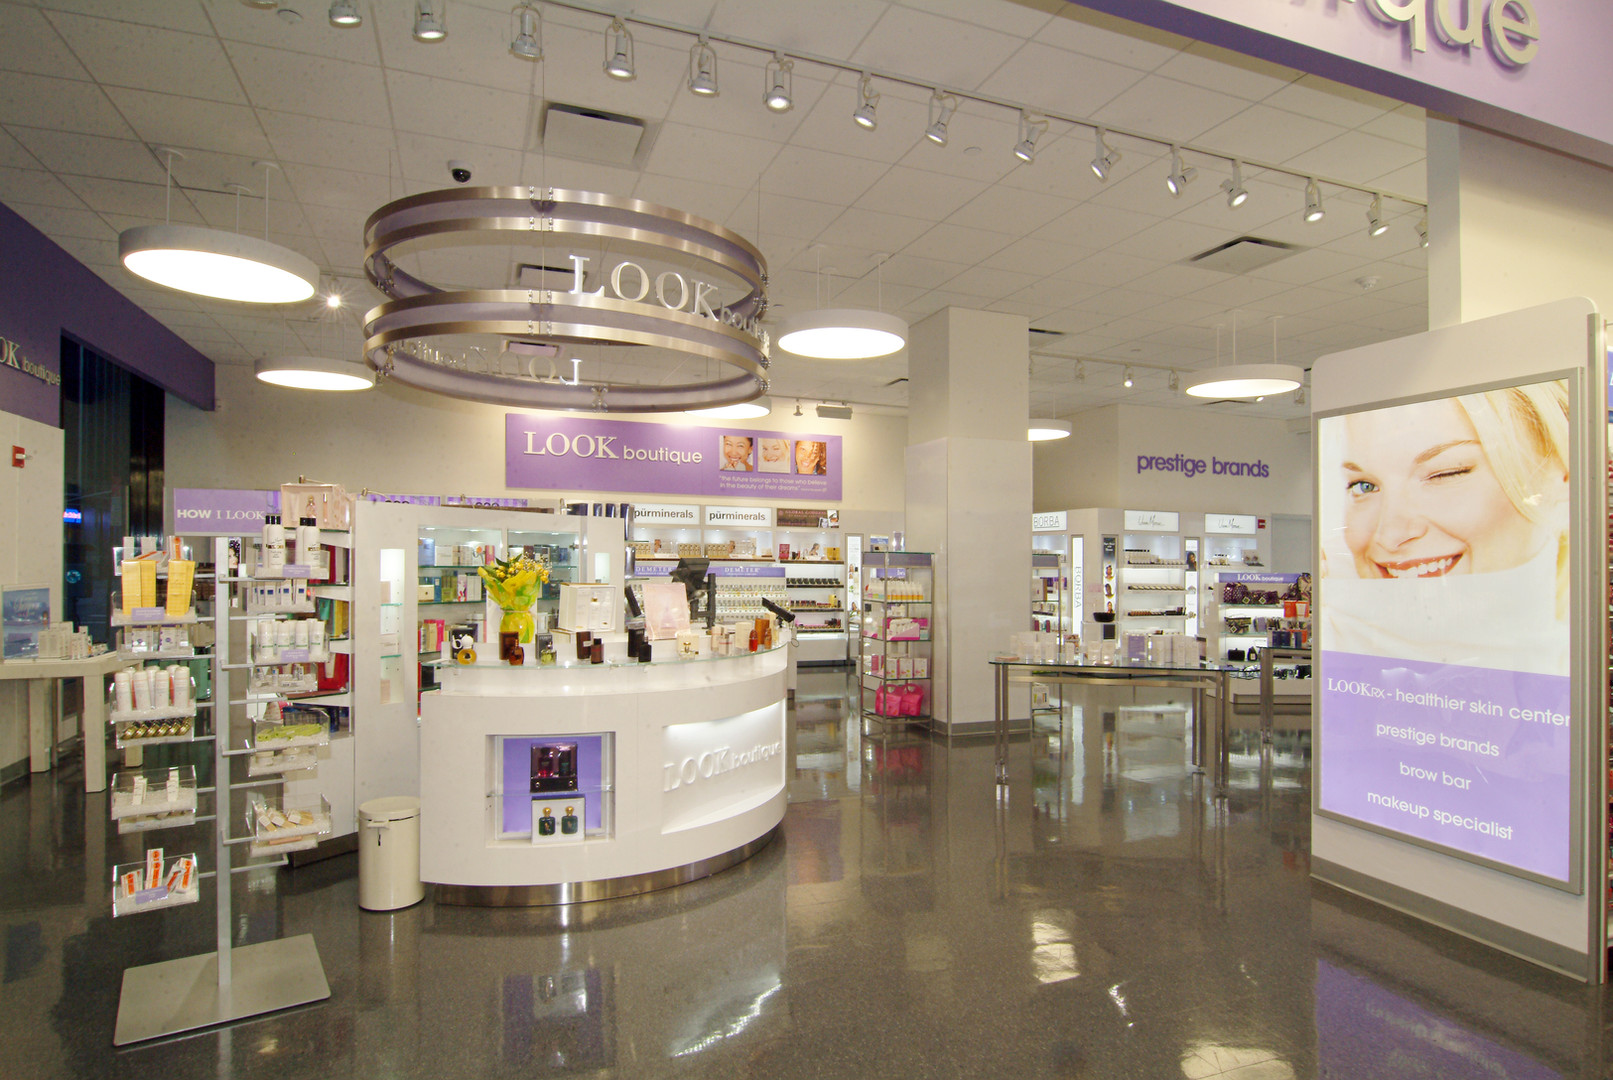 DuaneReade-Interior-2.jpg